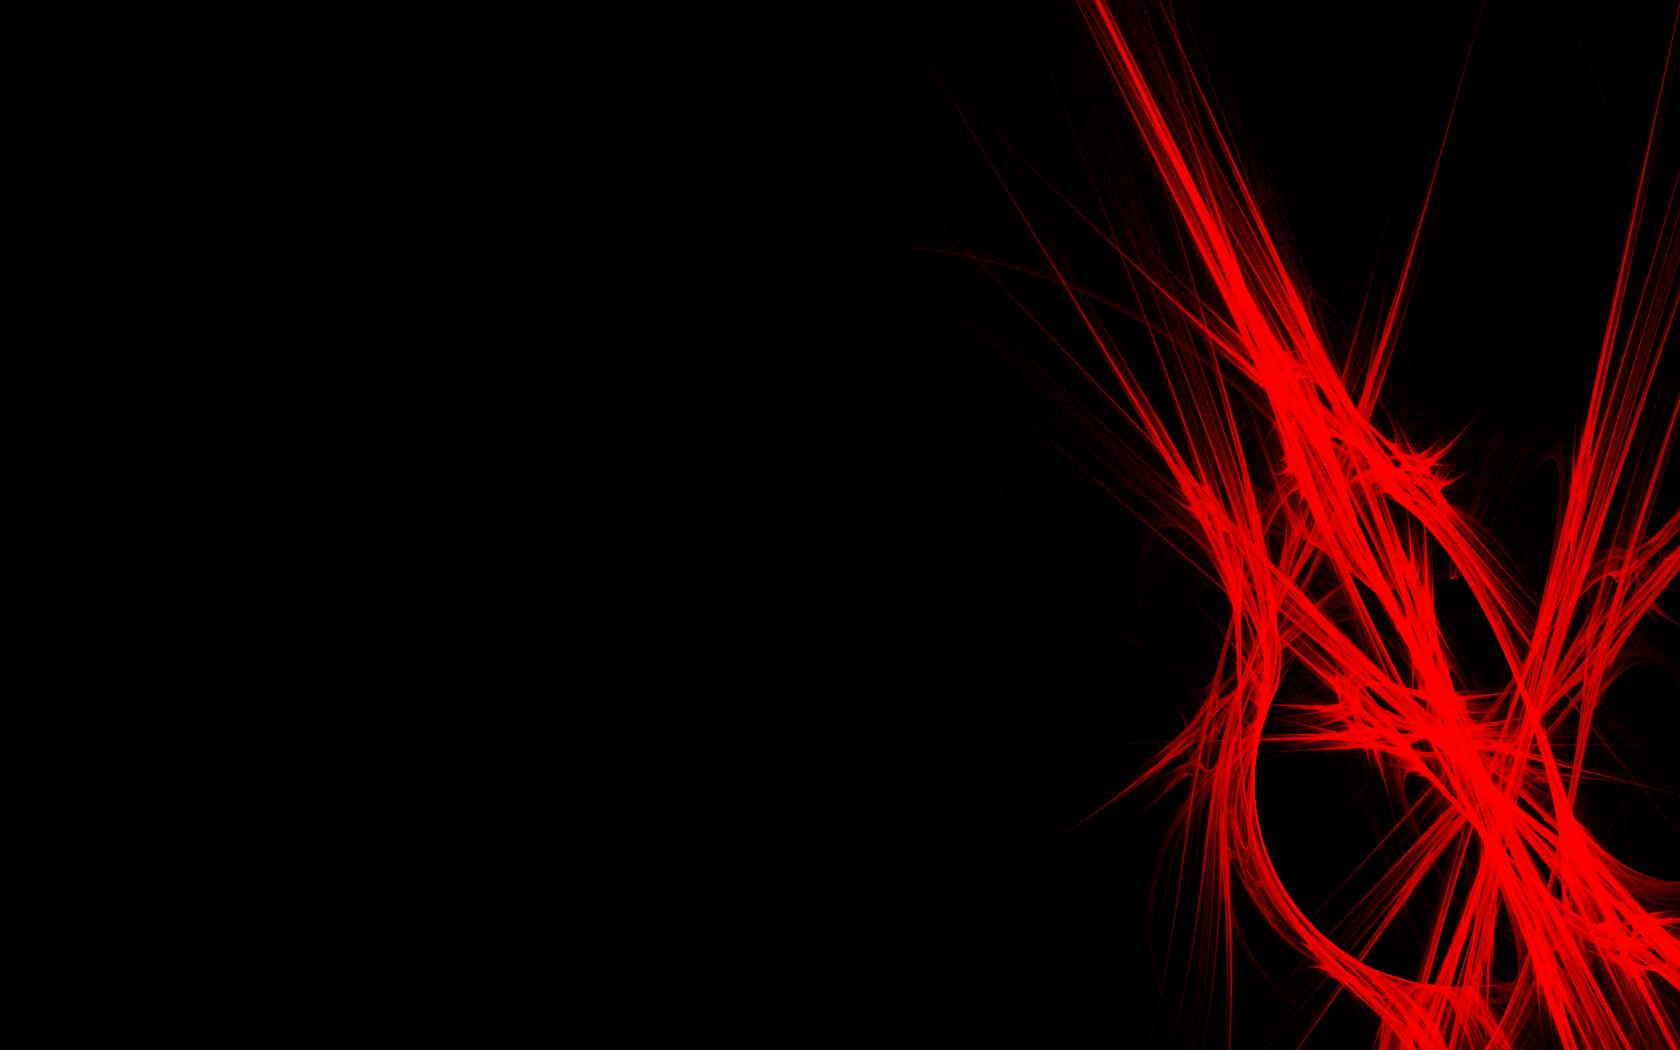 ... Graphic Design Background | Red and Black BackgroundHD Wallpapers